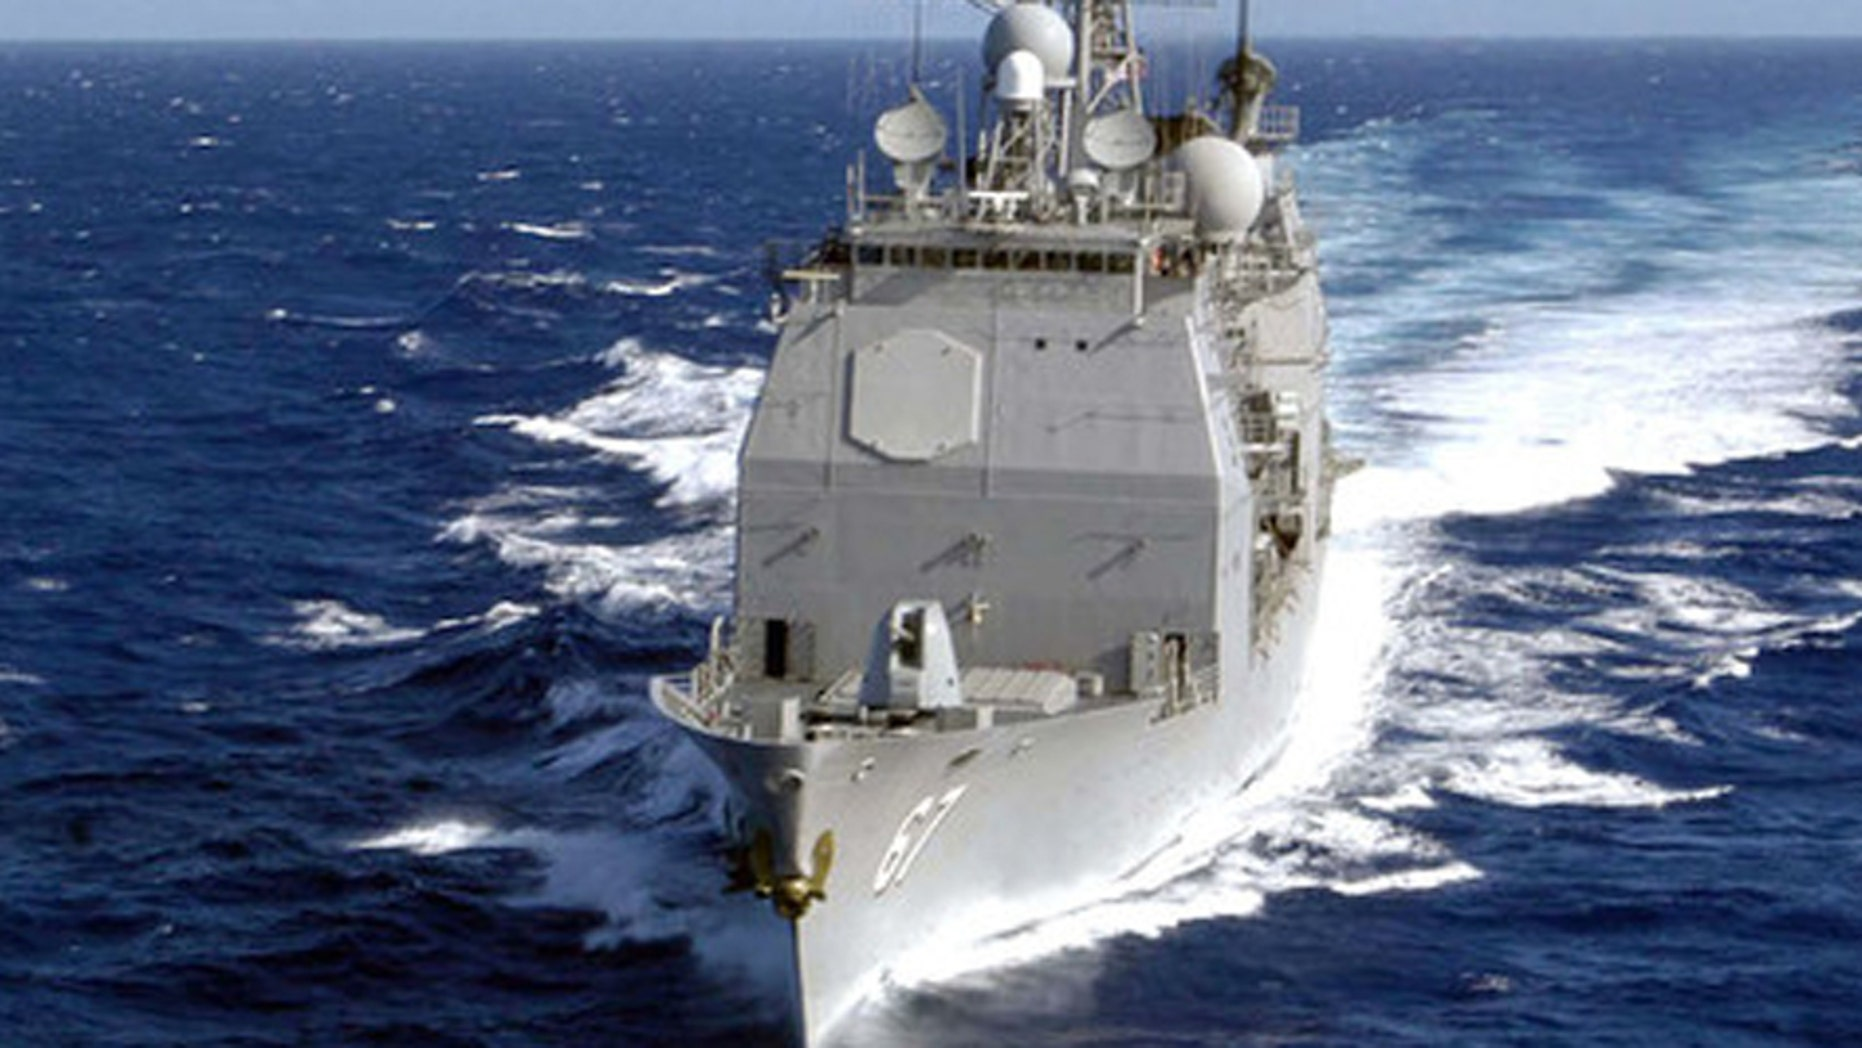 File photo: The USS Shiloh (CG-67) cruises through the waters of the South Pacific Ocean. (Credit: Getty Images)